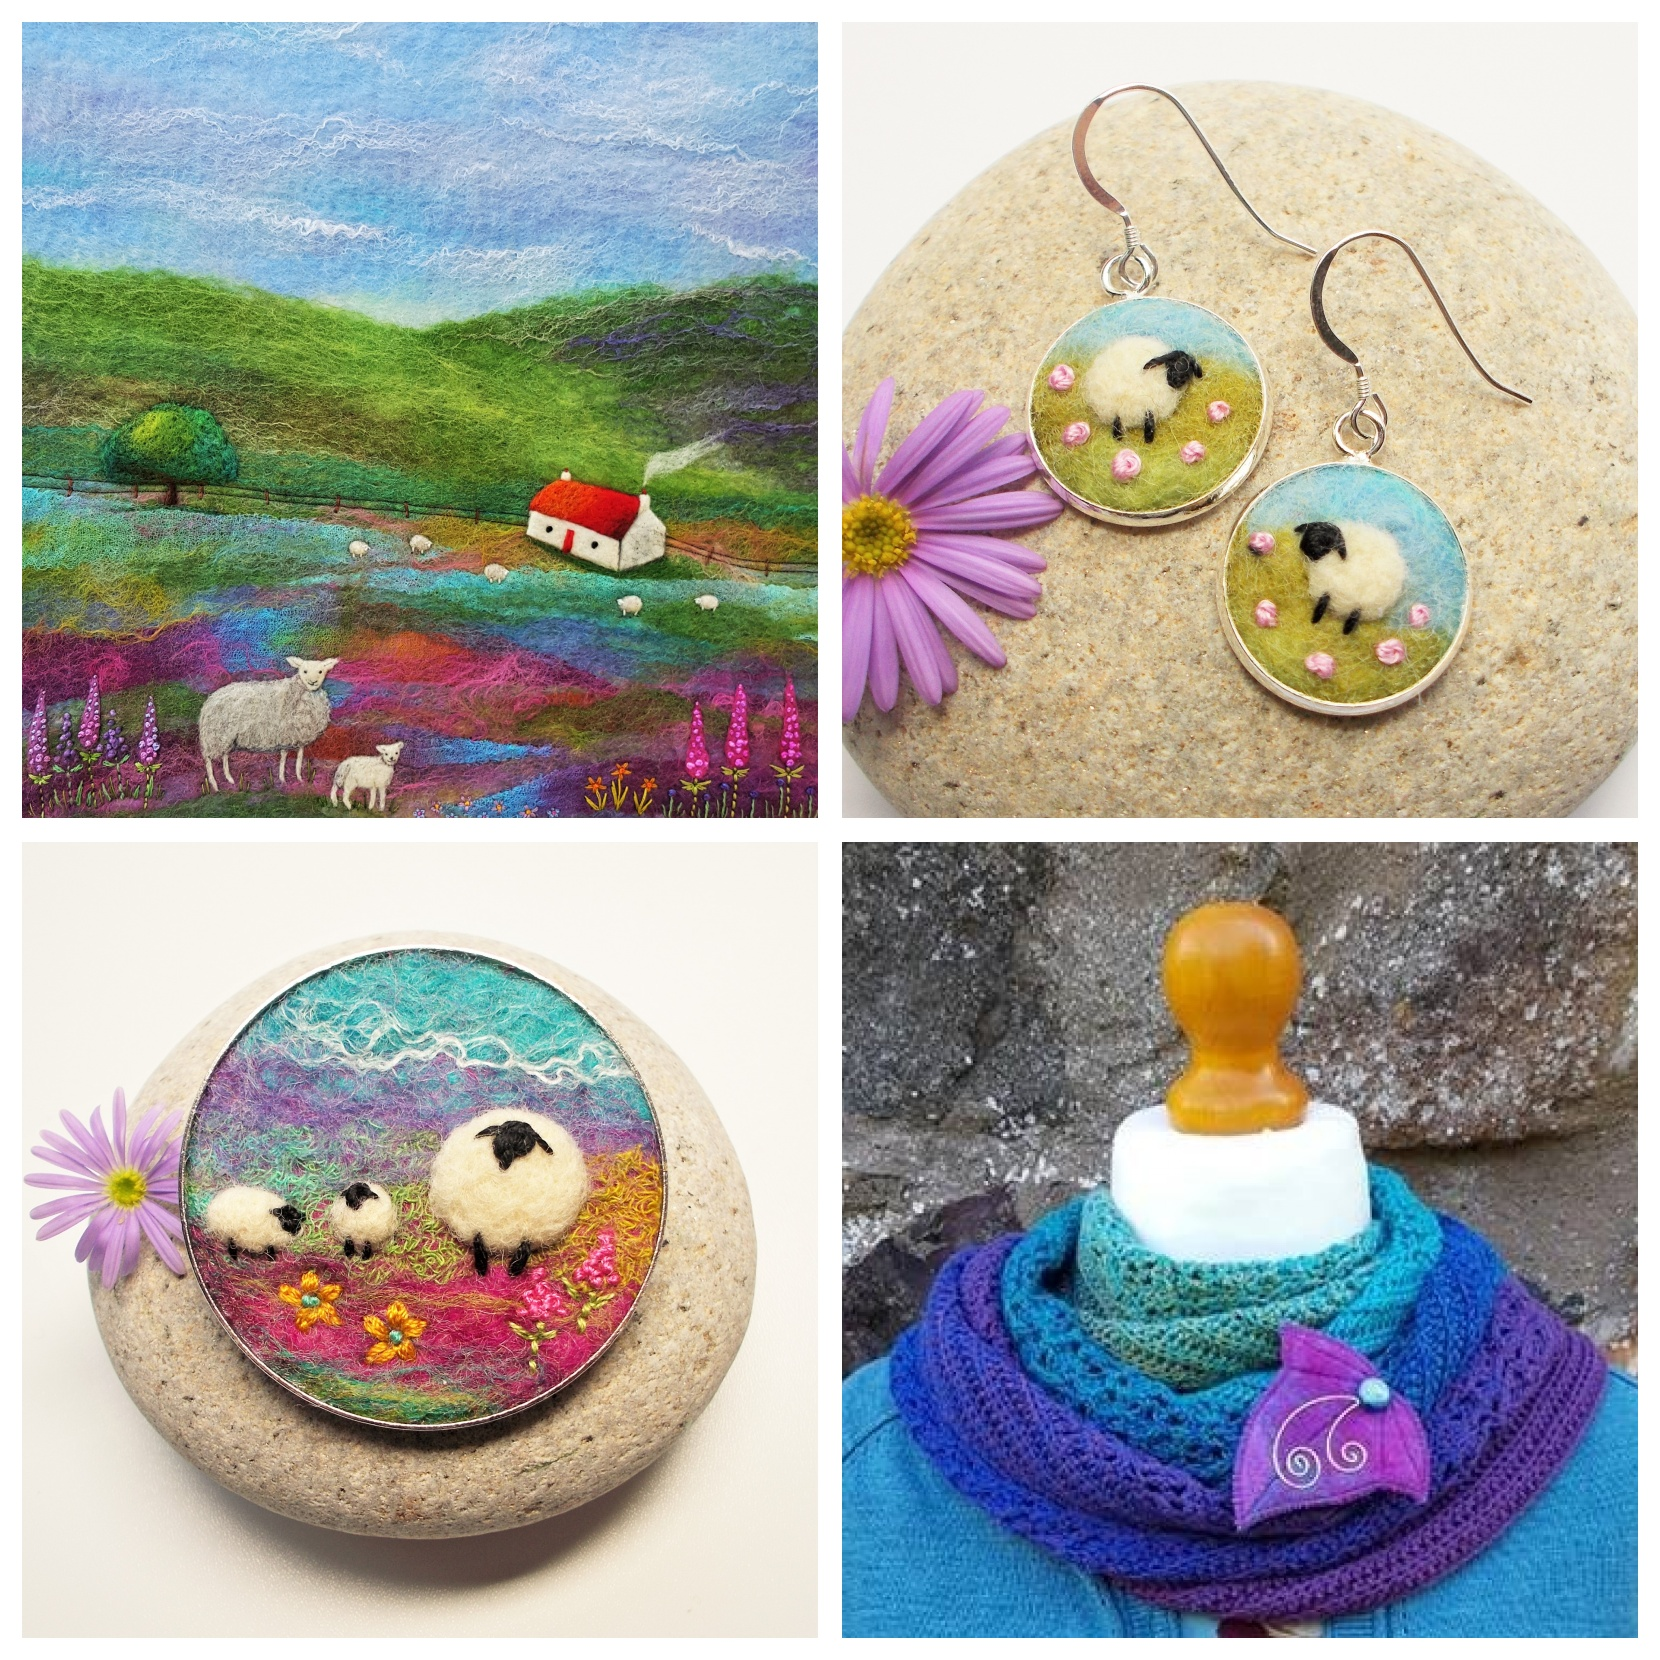 Aileen Clarke Crafts   Aileen makes a wide variety of felt art and accessories including her ever popular Sheep Collection of needle felted brooches, pendants, earrings and shawl pins. Aileen will also be bringing framed originals and textile trinket boxes to Make::Wool 2019 as well as a selection of useful items featuring her artwork in print.